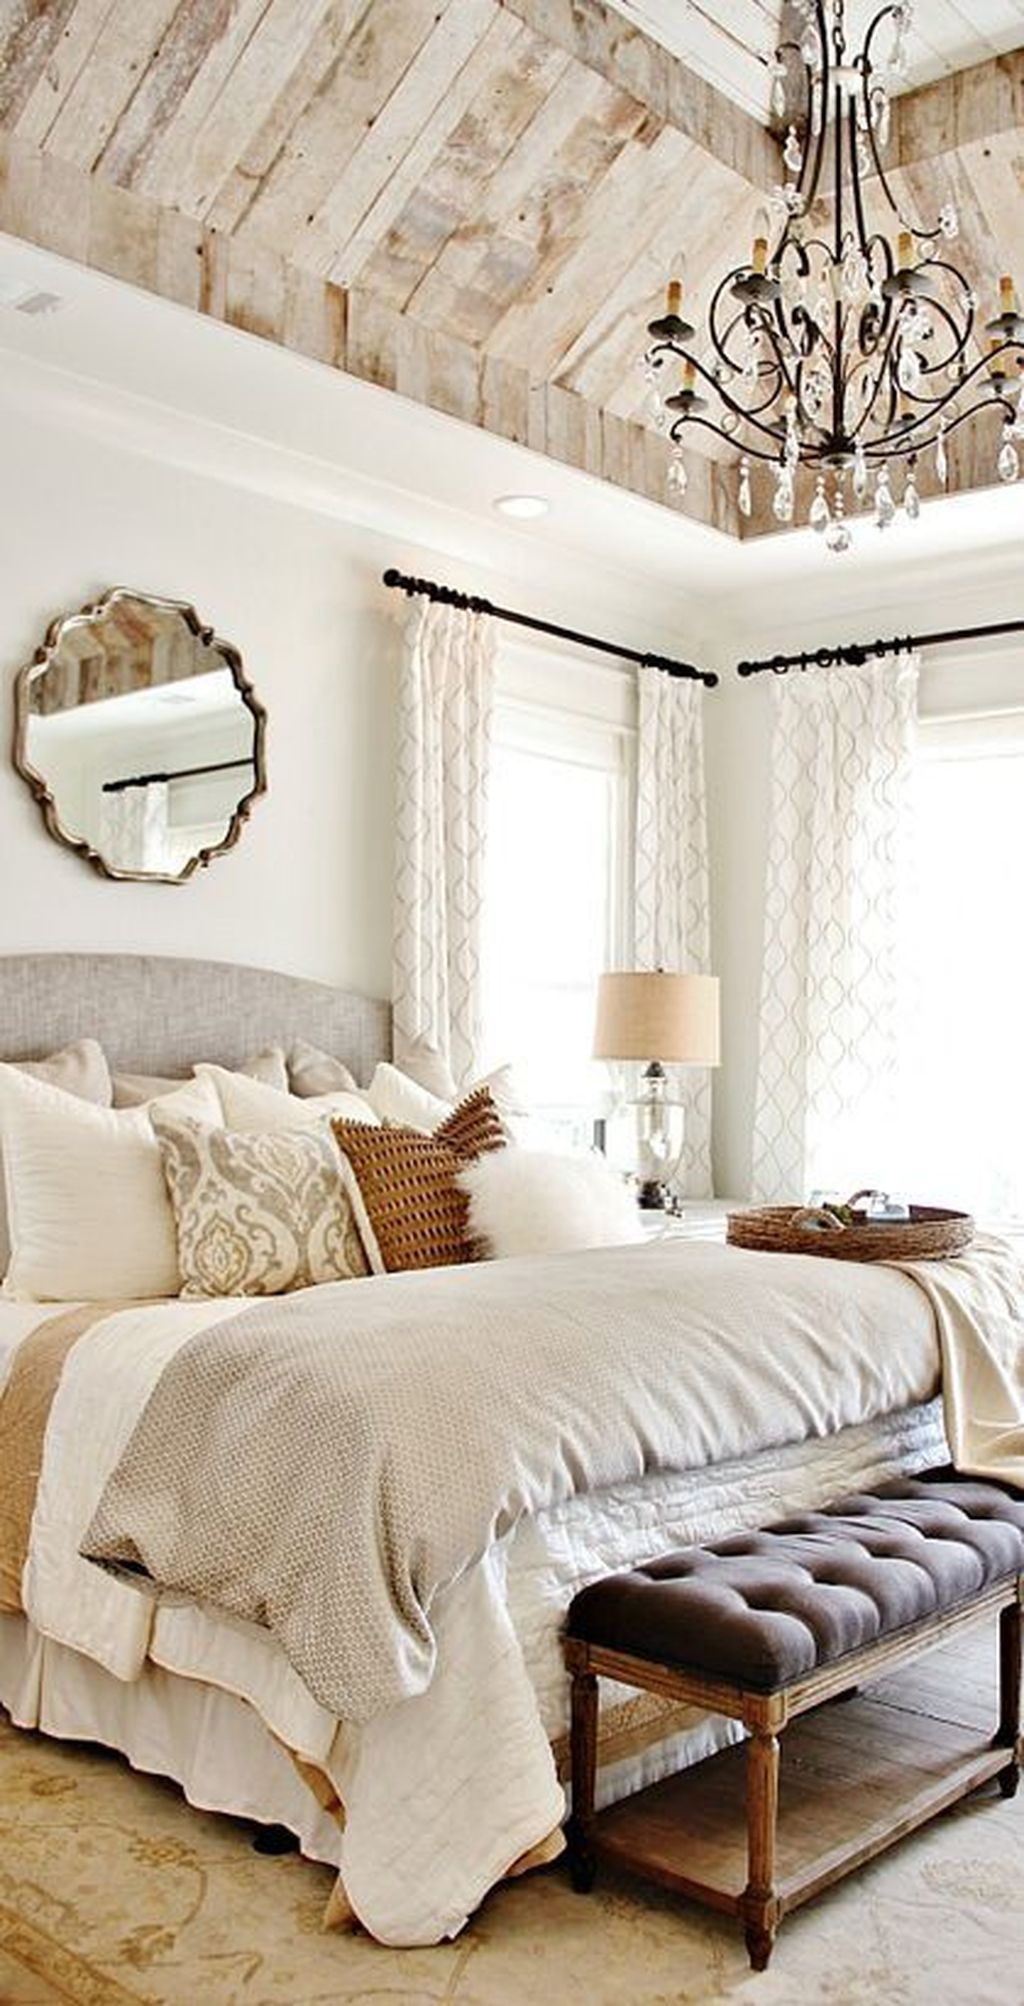 Master bedroom design ideas   Vintage and Pretty Chabby Chic Bedroom Design Ideas  Chabby chic